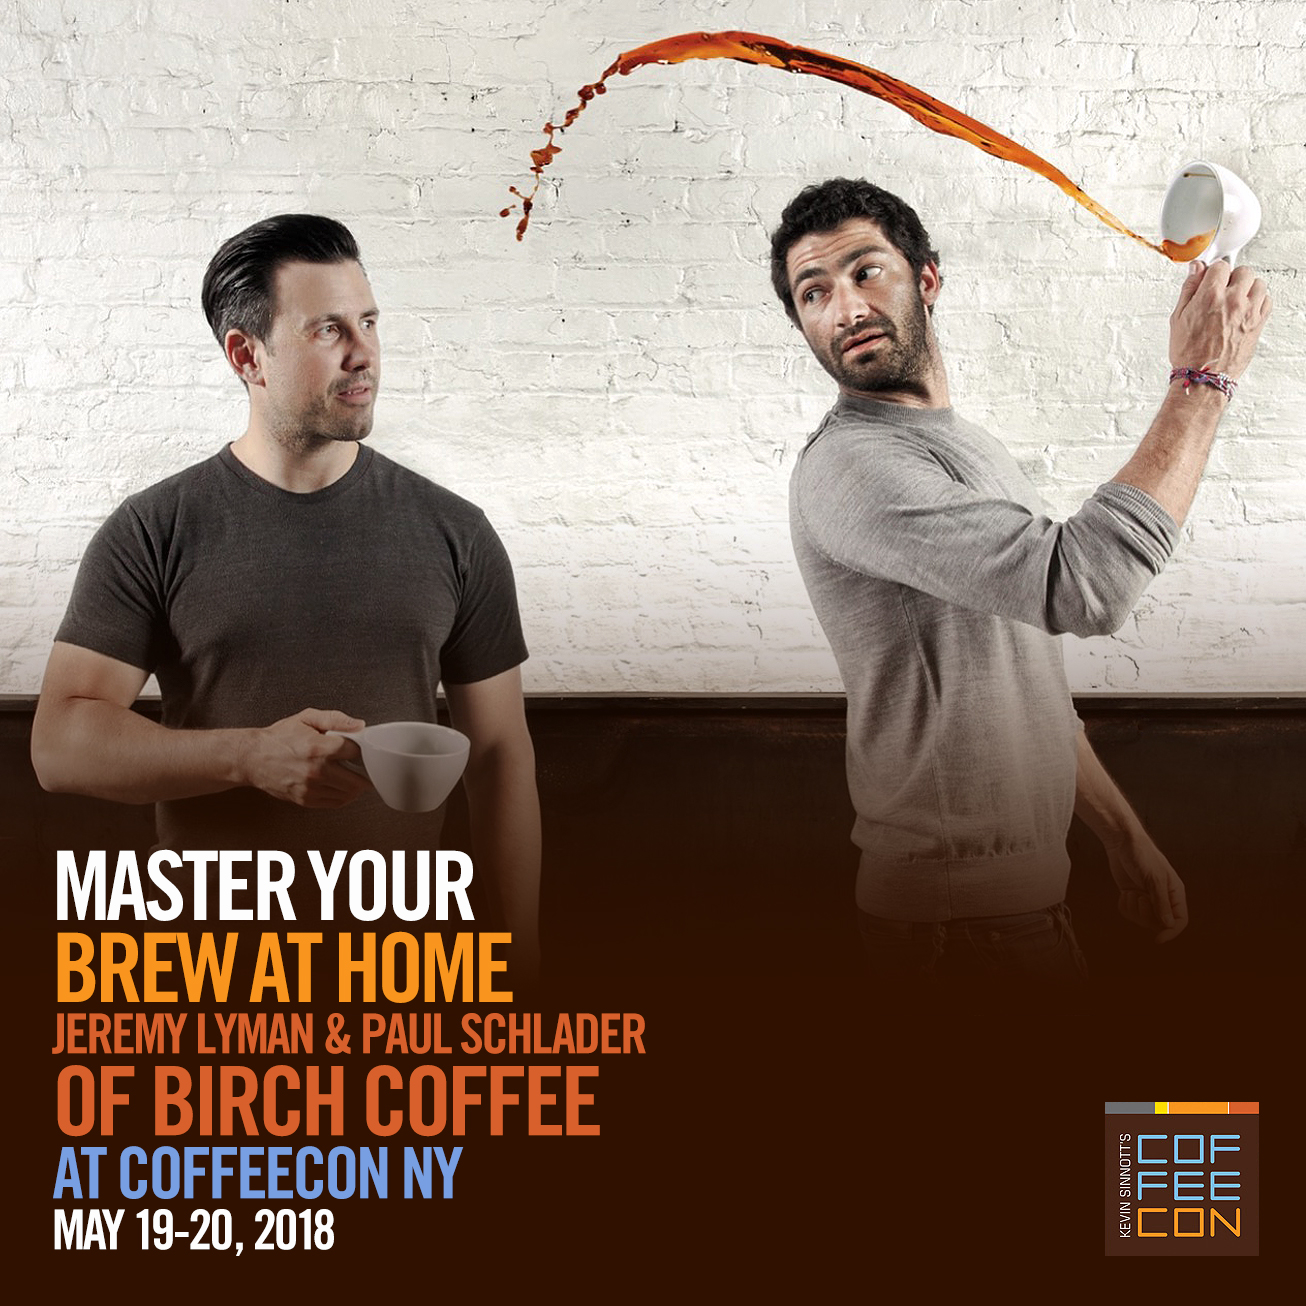 Master Your Brew At Home with Birch Coffee